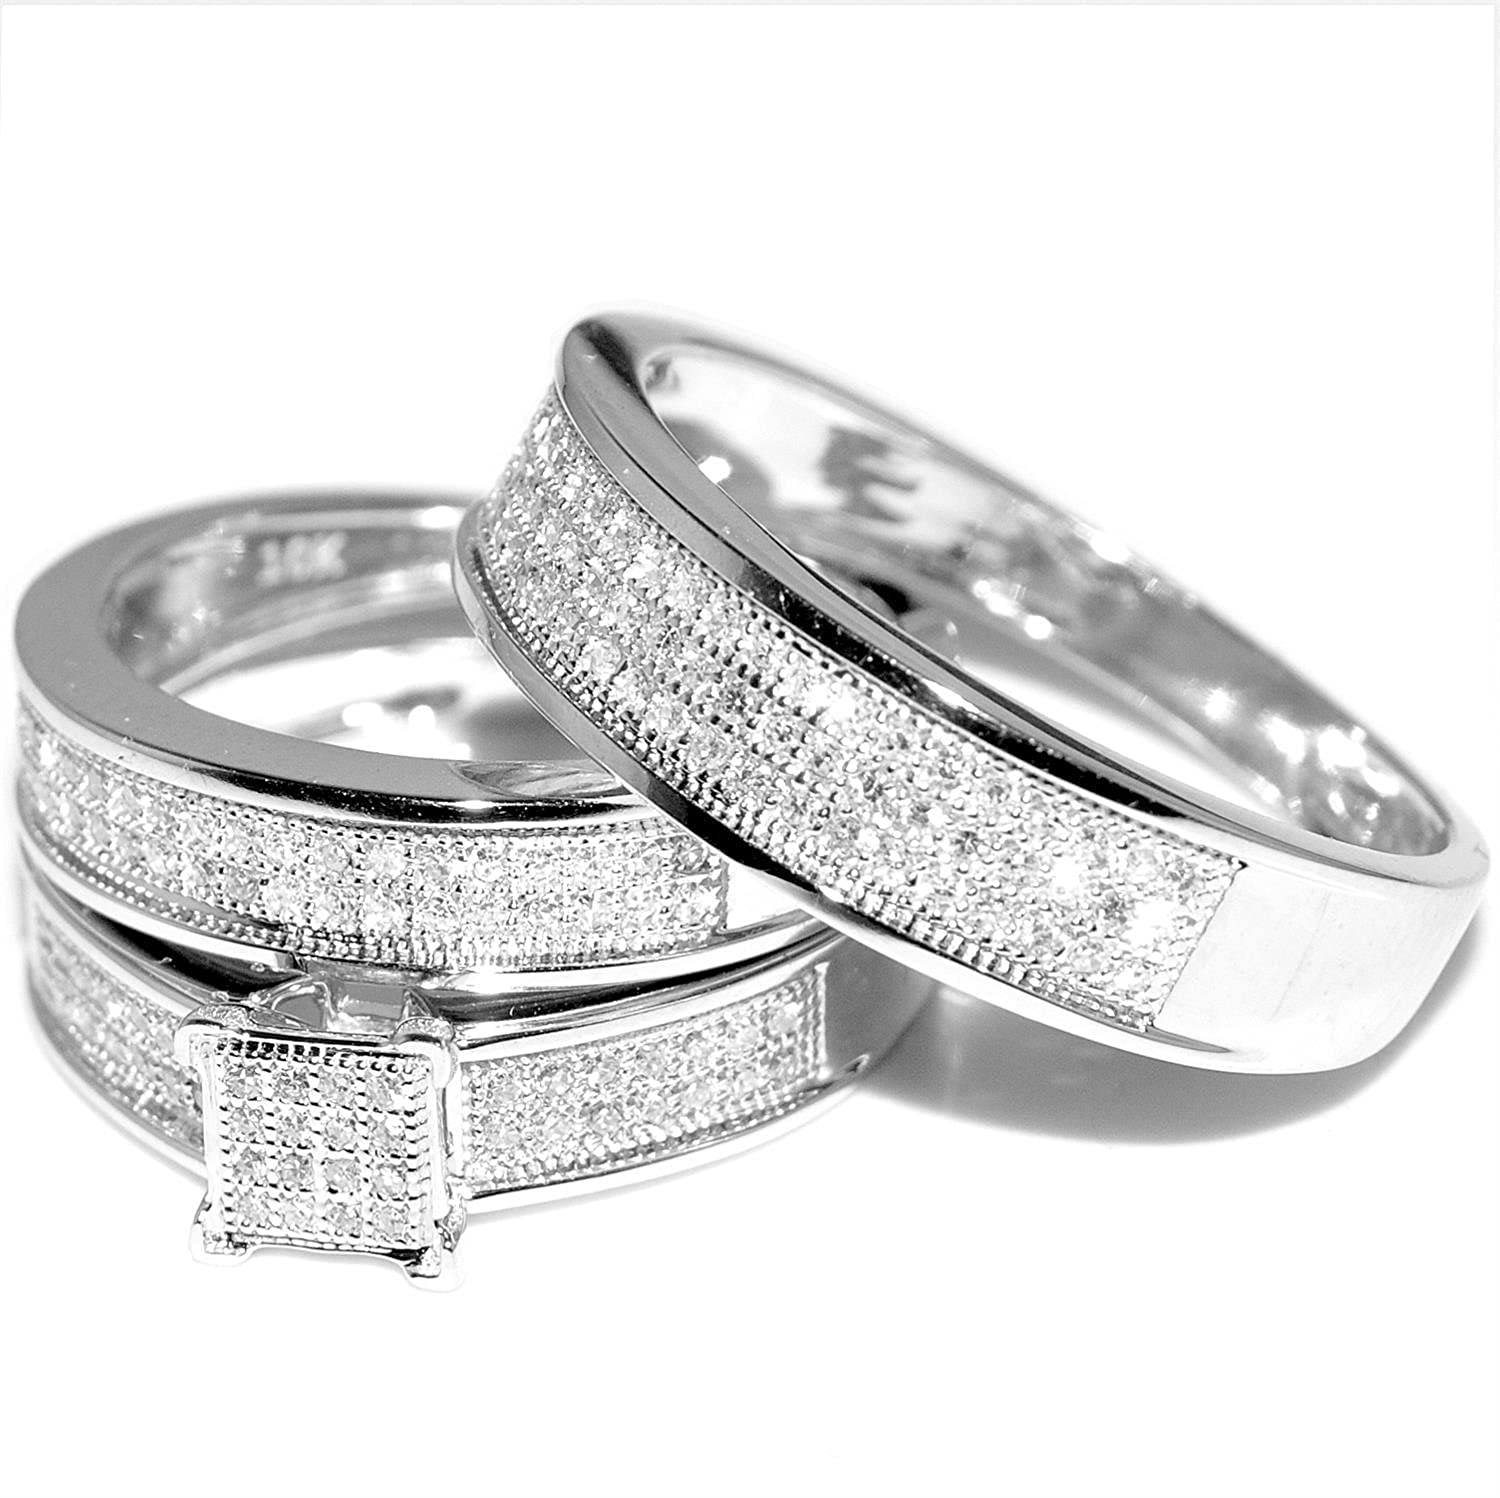 white gold trio wedding set mens womens wedding rings matching 040cttw diamondamazoncom - Mens White Gold Wedding Ring